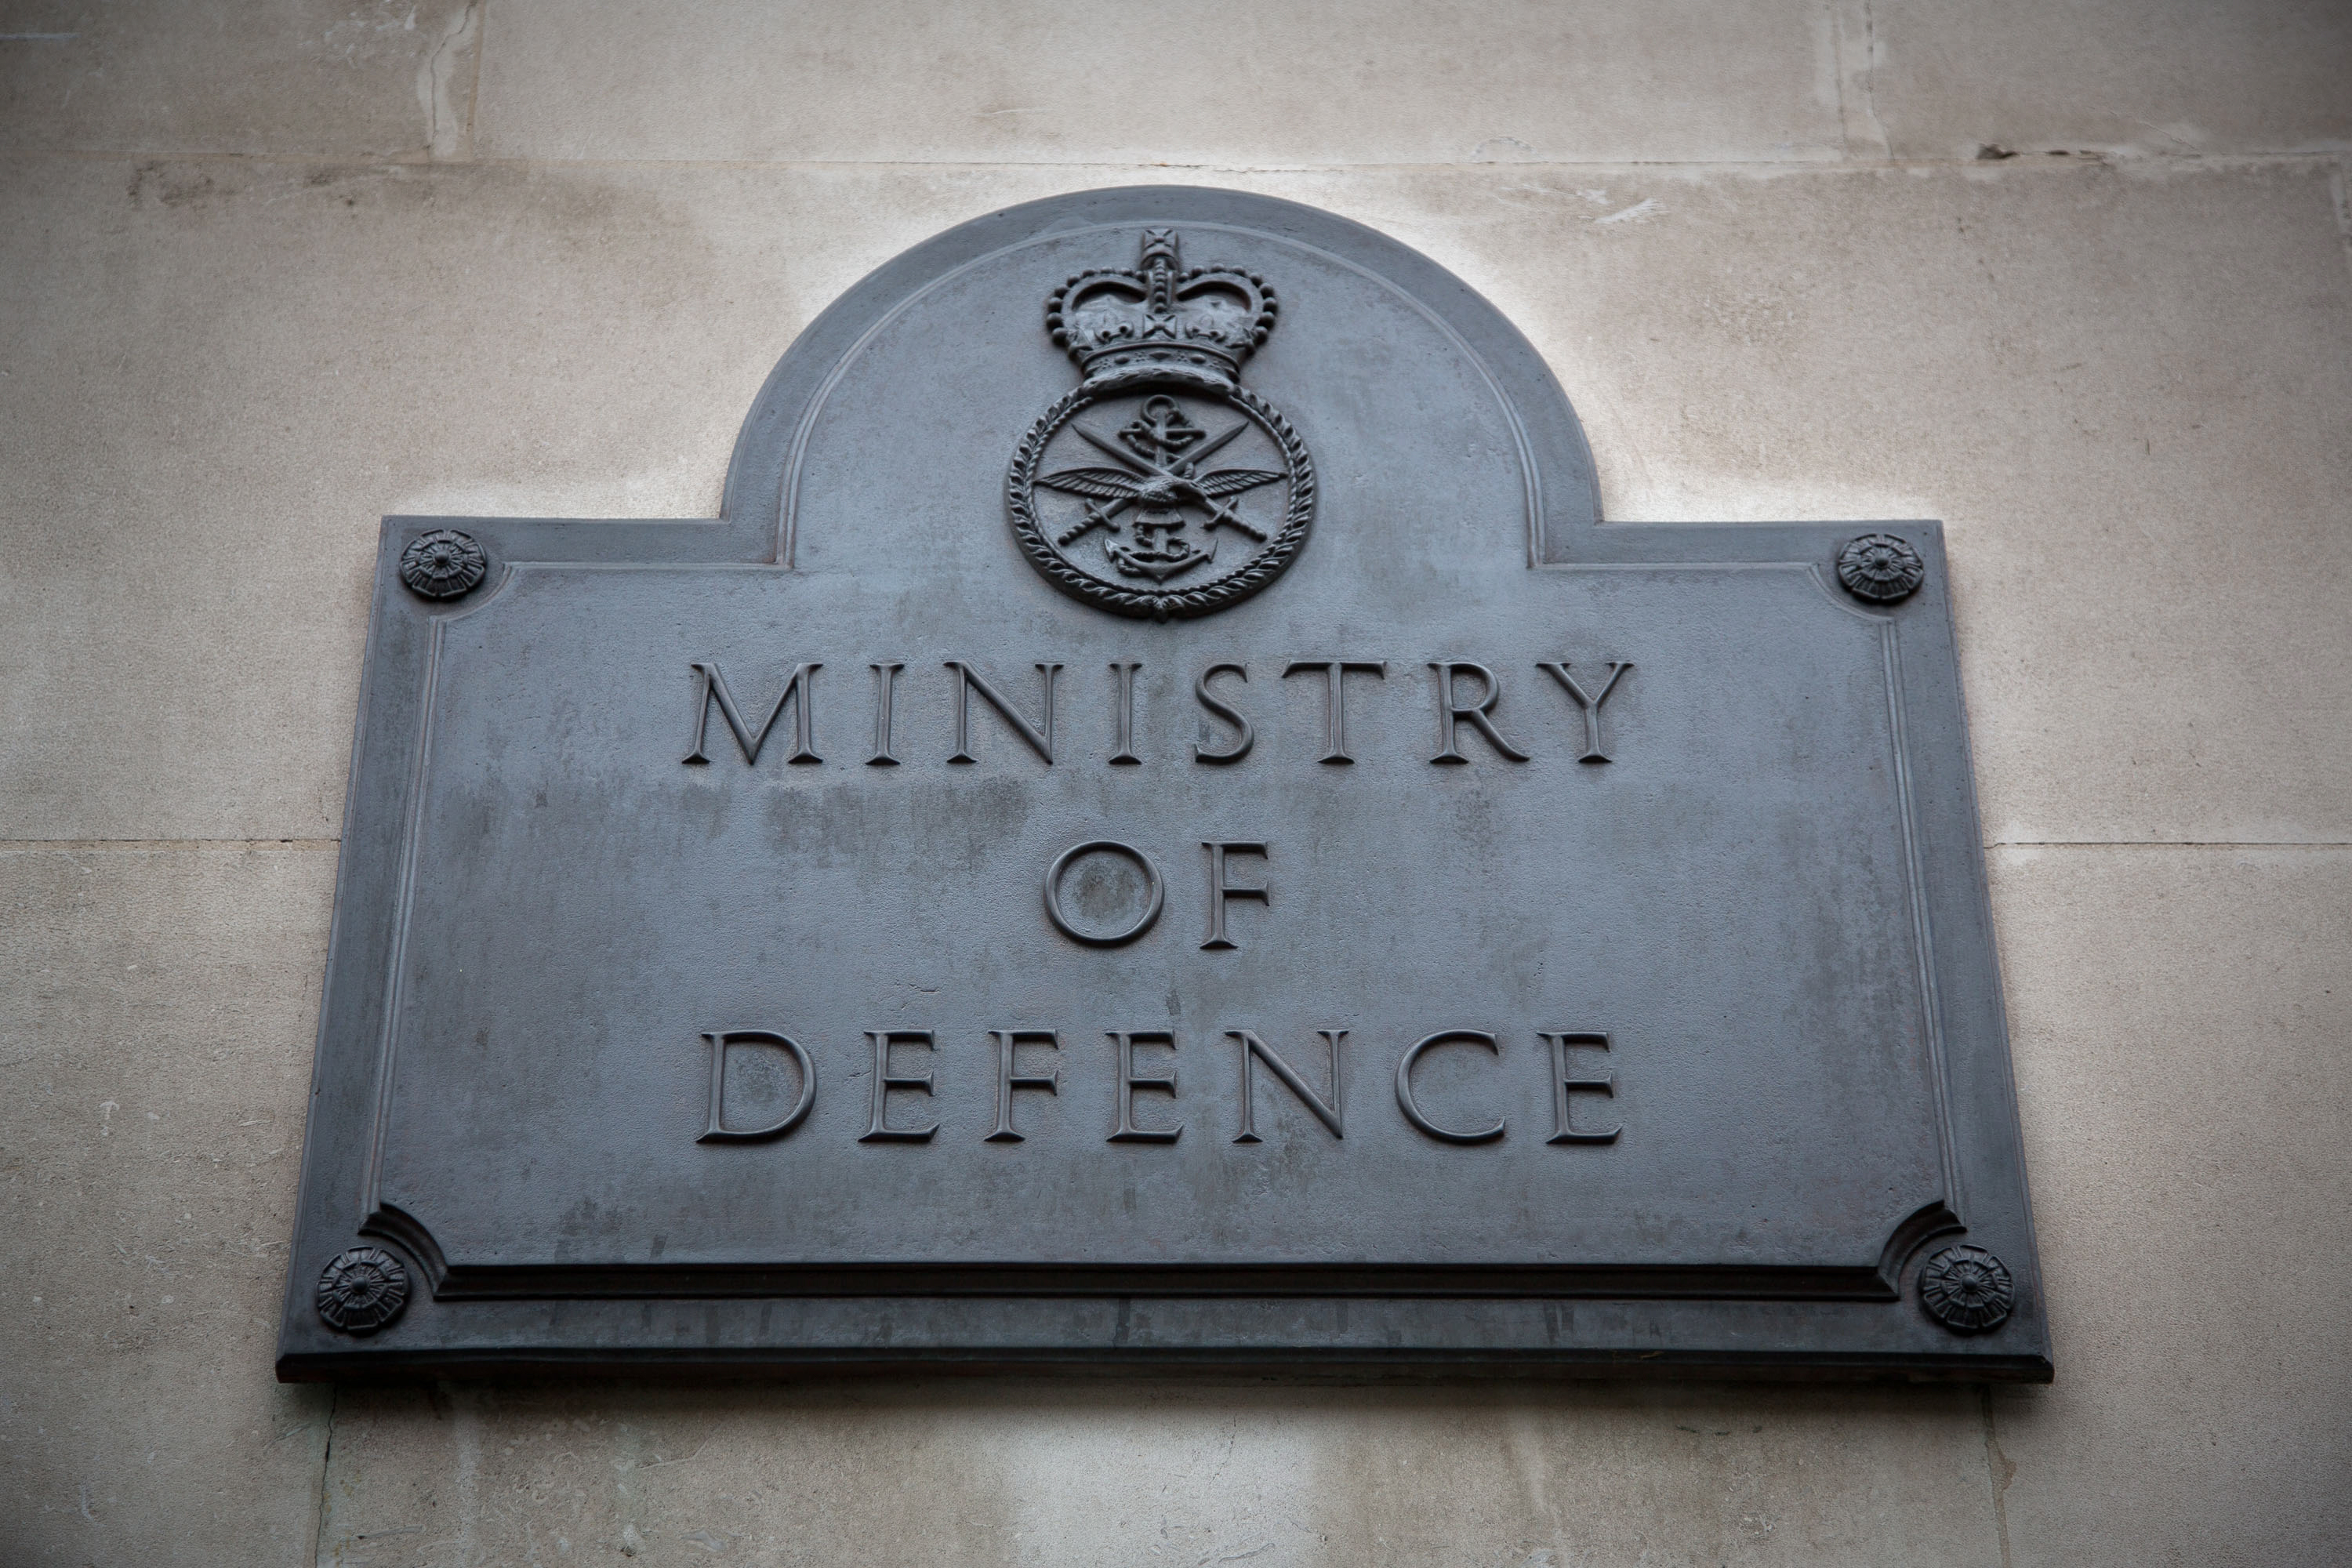 The plaque outside the South Door of the Ministry of Defence Main Building in Whitehall, London.